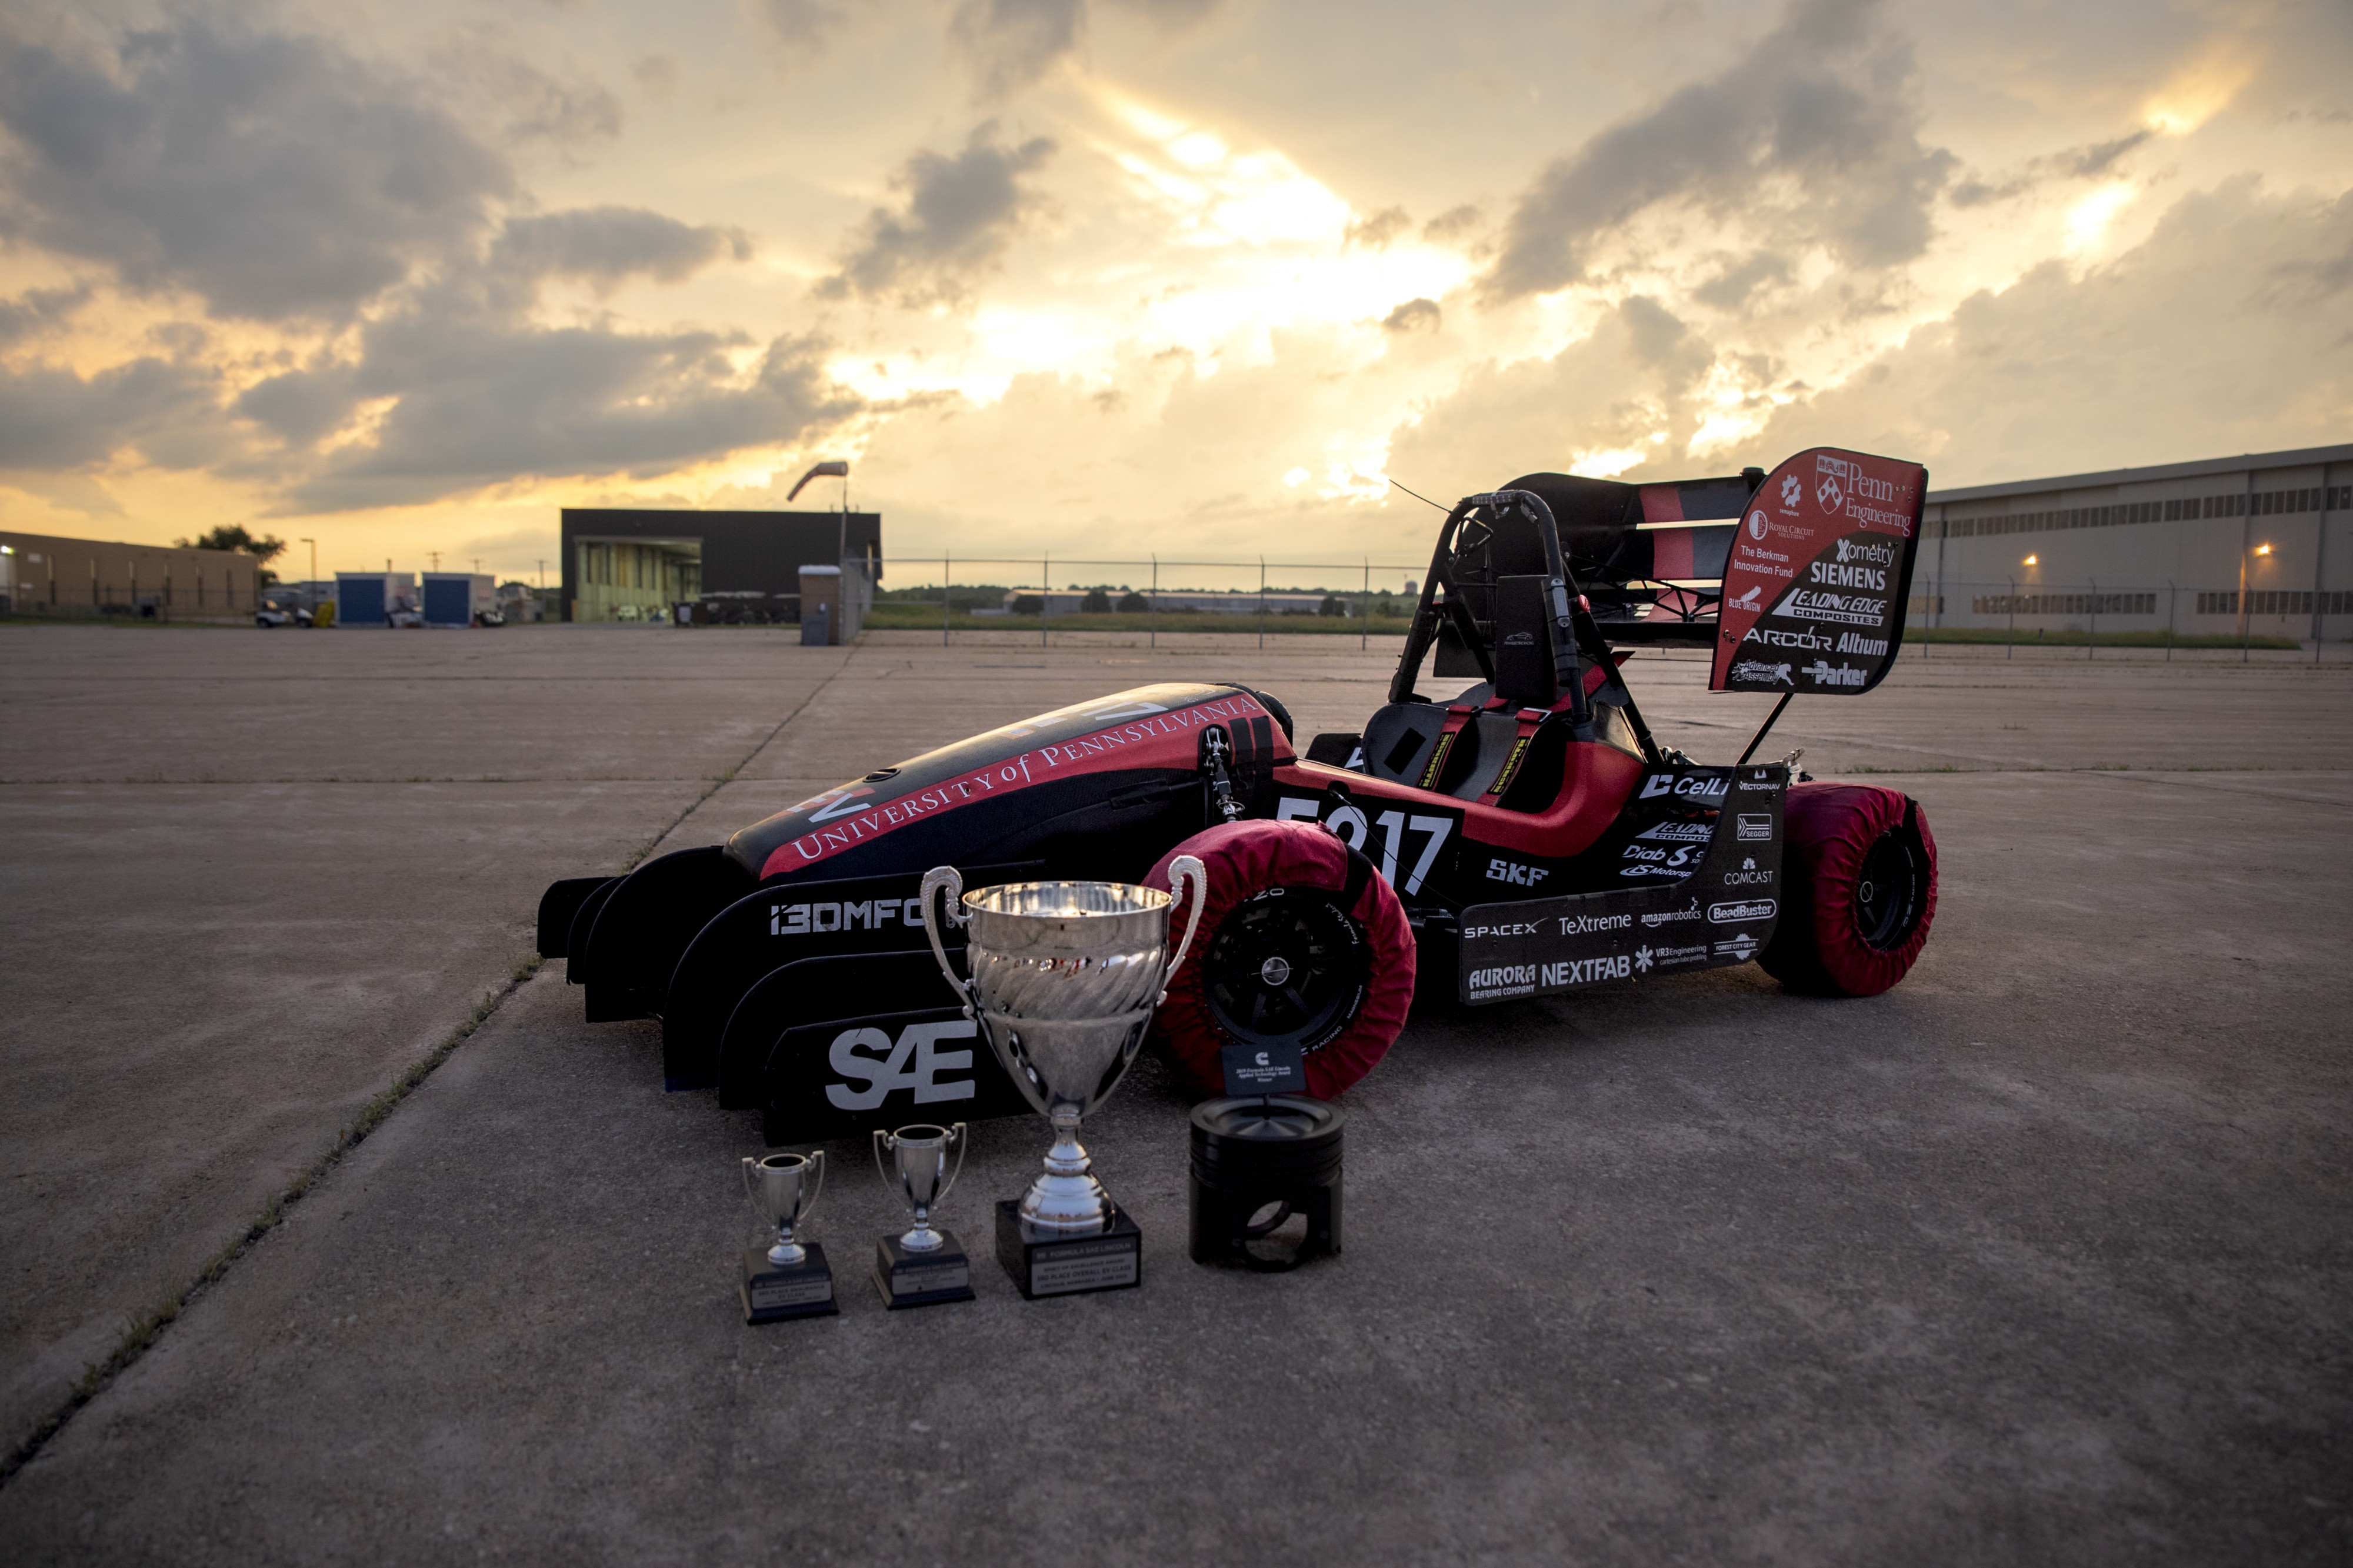 Penn Electric Racing's REV5 car photographed after the Lincoln FSAE competition, with four trophies in the foreground.